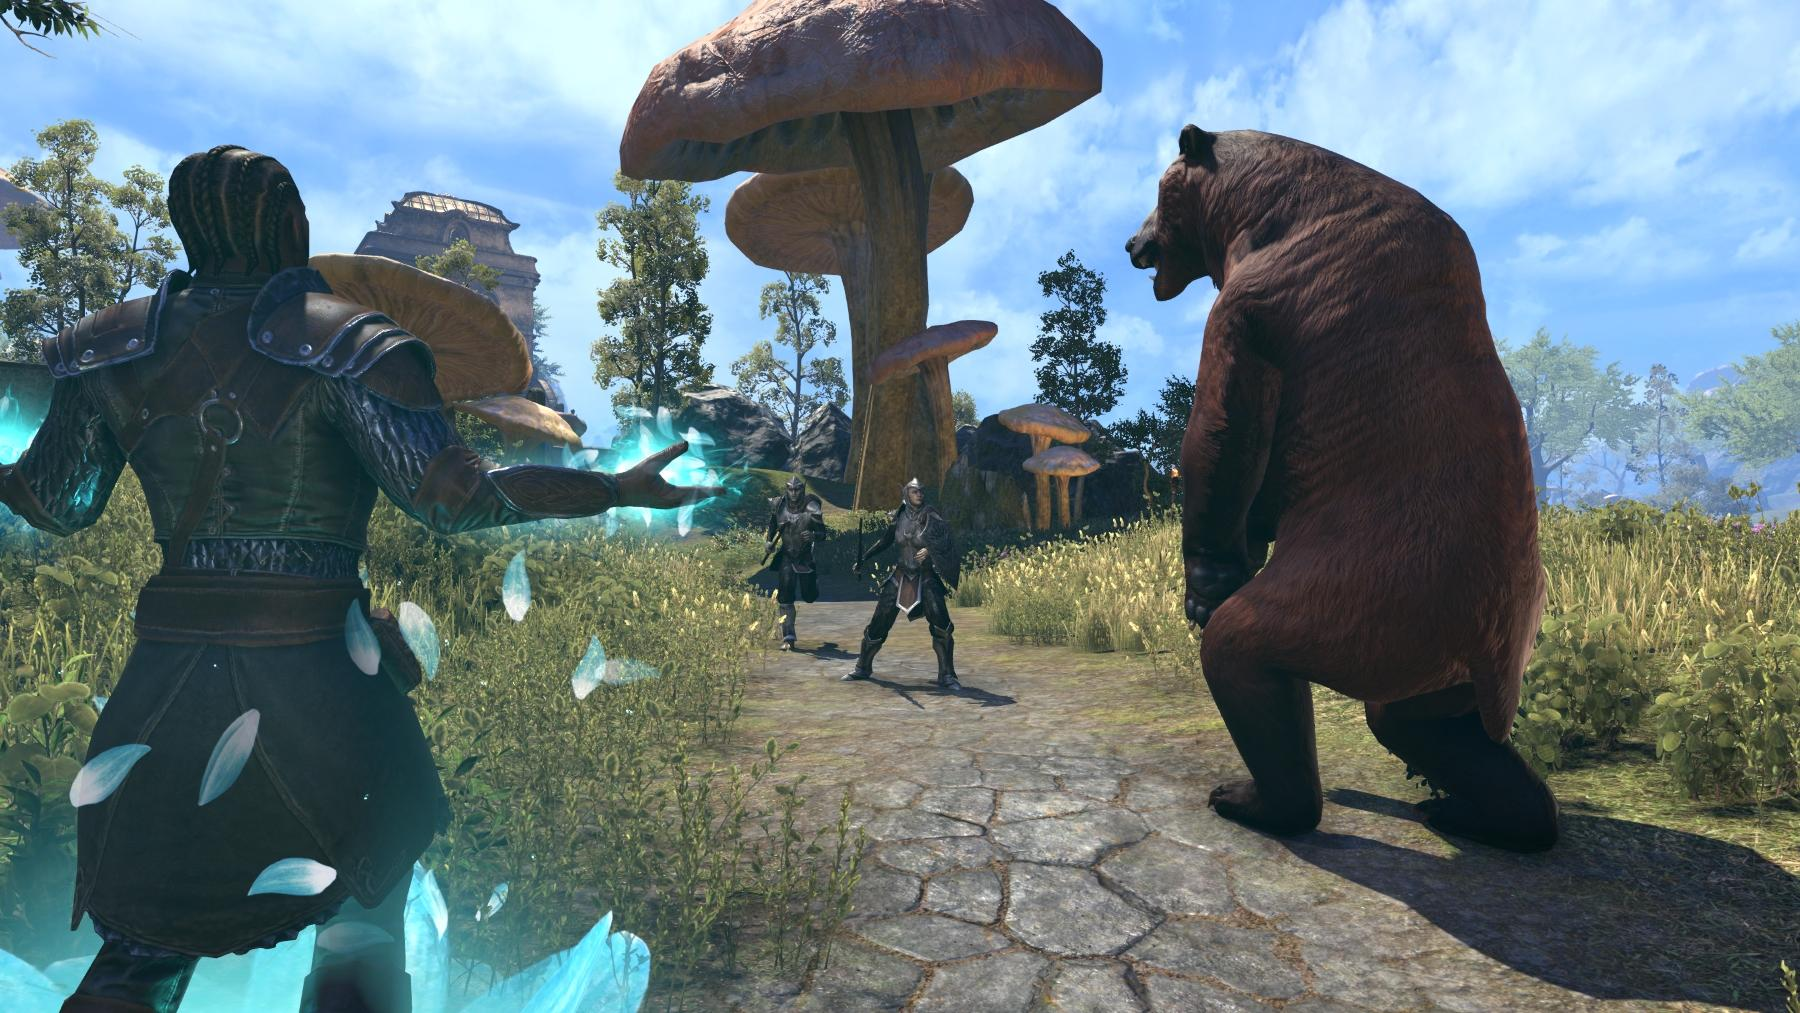 f1448a667c6a895c443f8d9e98bbe3d6 The Enlargement Of ESO: Morrowind Before The Major Release Next Month